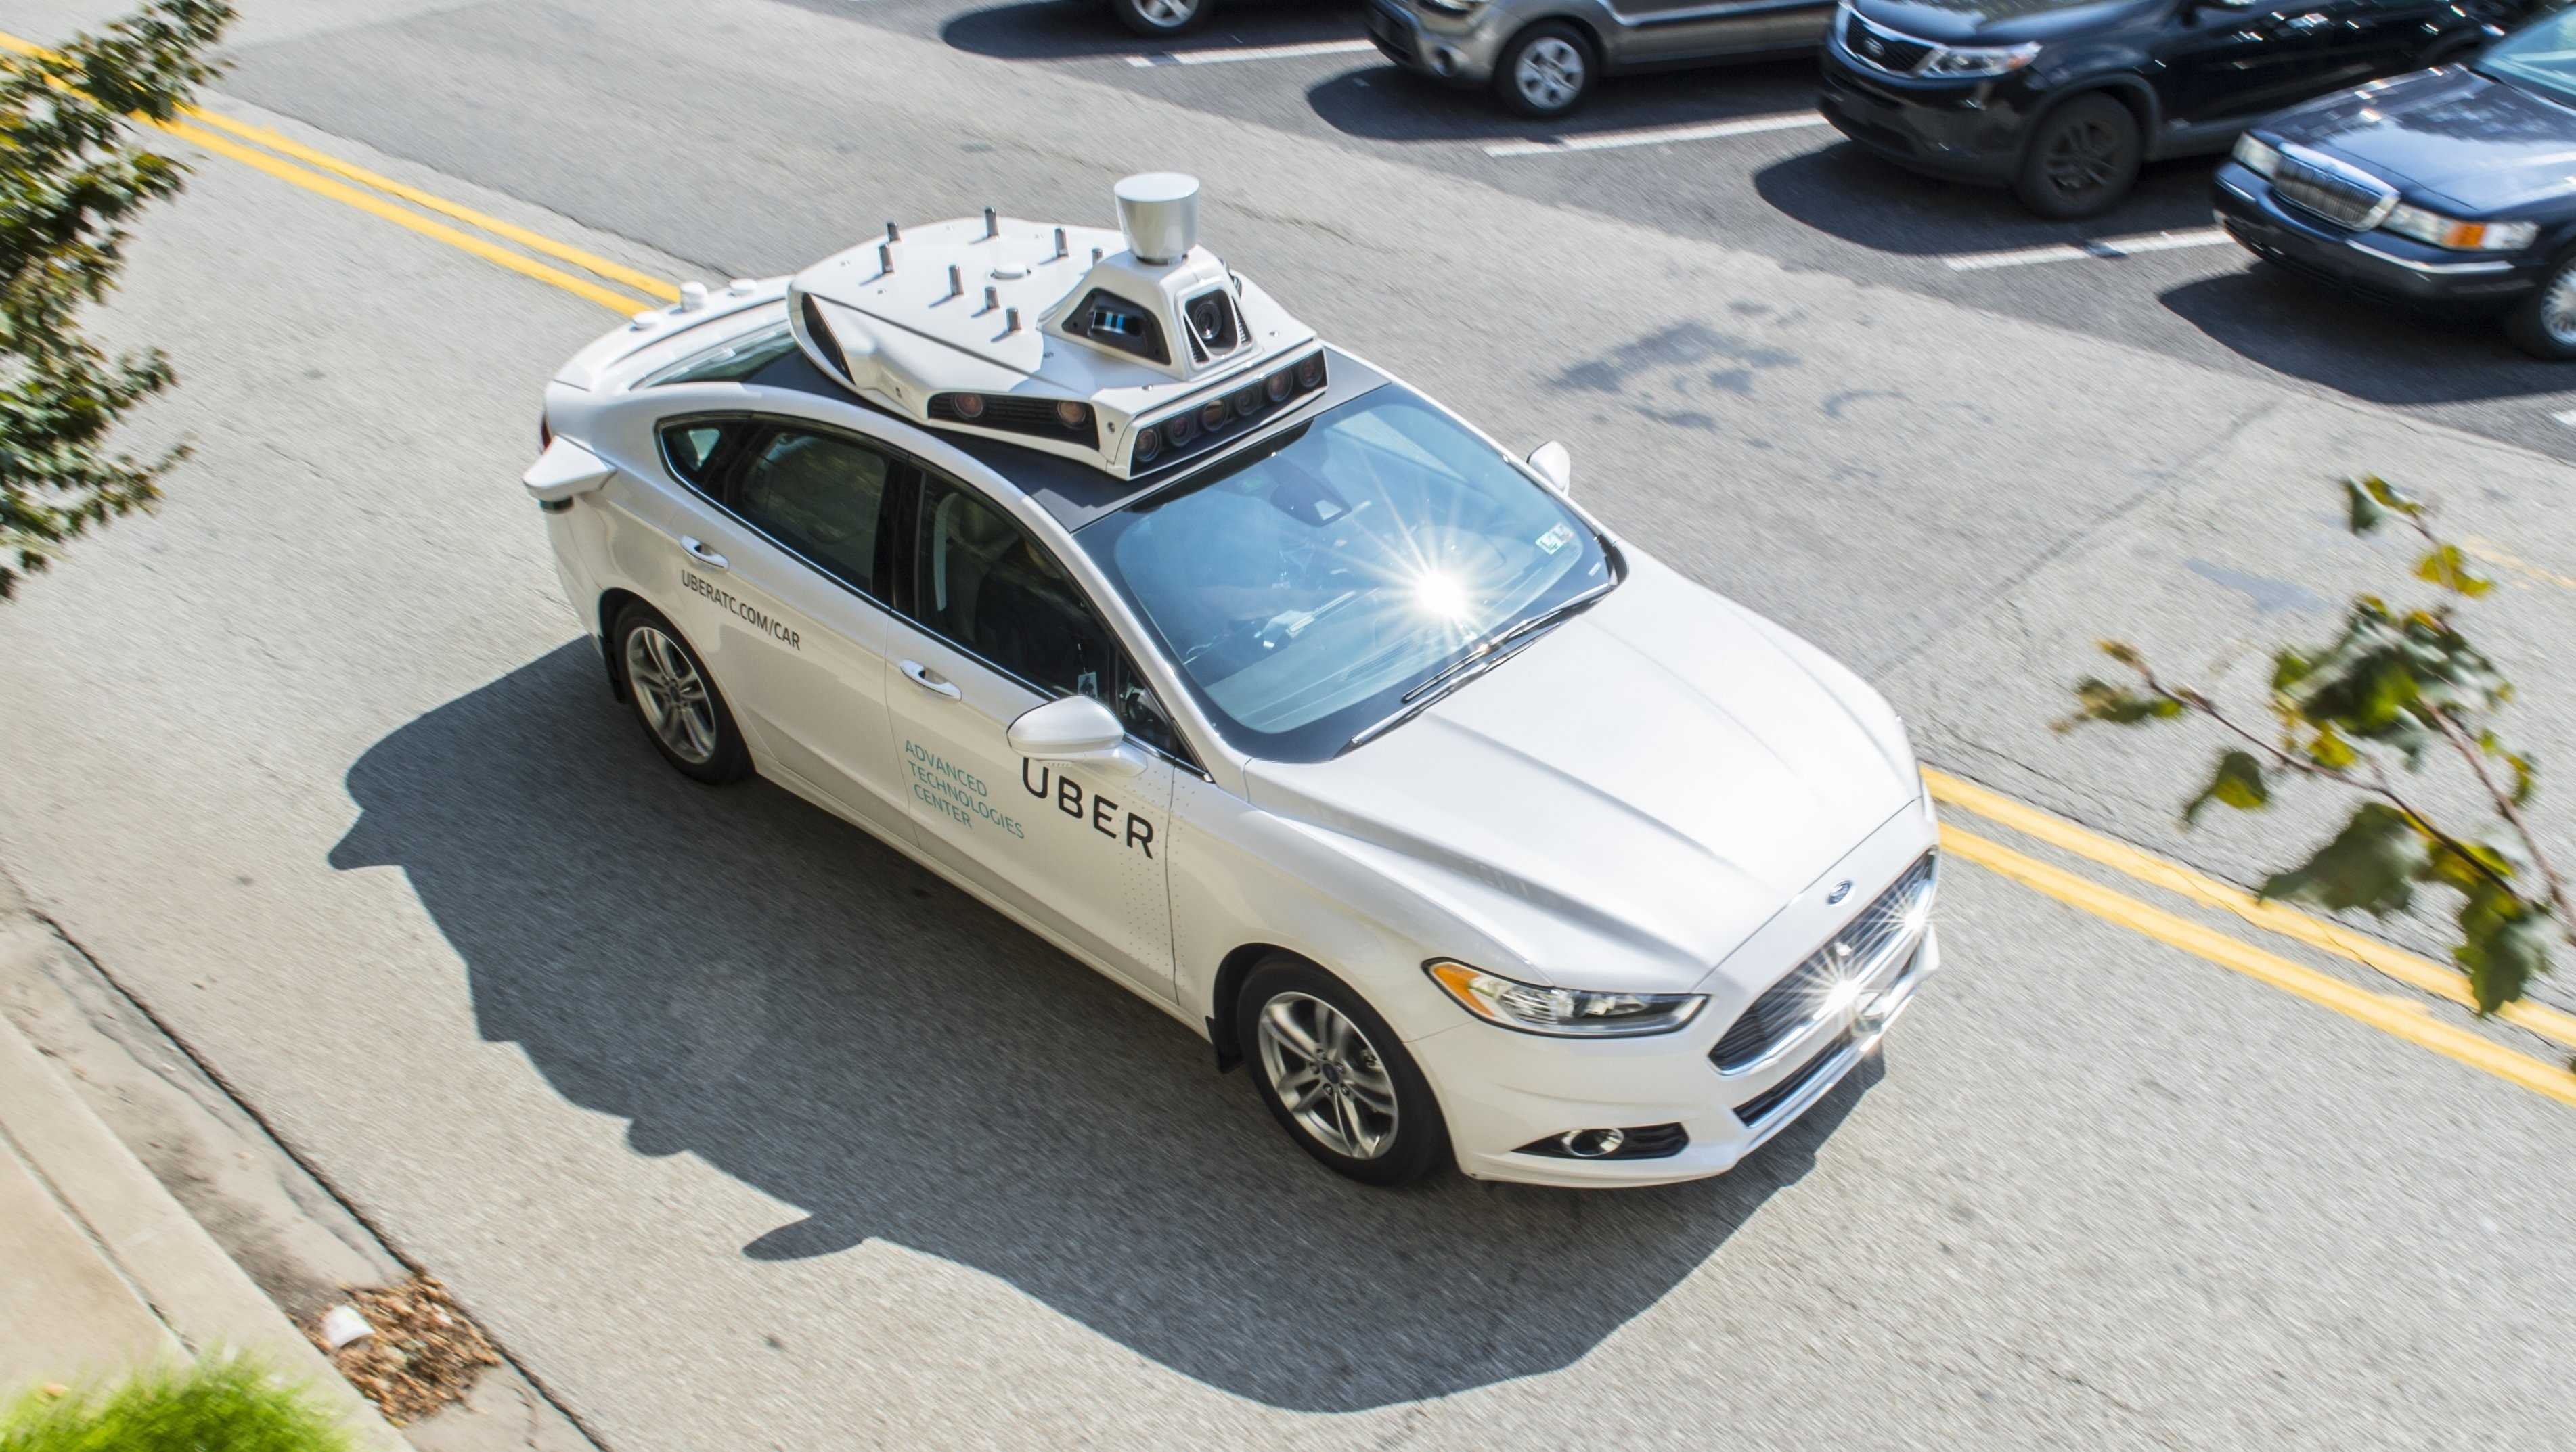 Uber's self-driving cars are hitting the roads once again in San Francisco, following a weekend crash in Tempe, Ariz. that grounded test cars in Pittsburgh and Arizona.